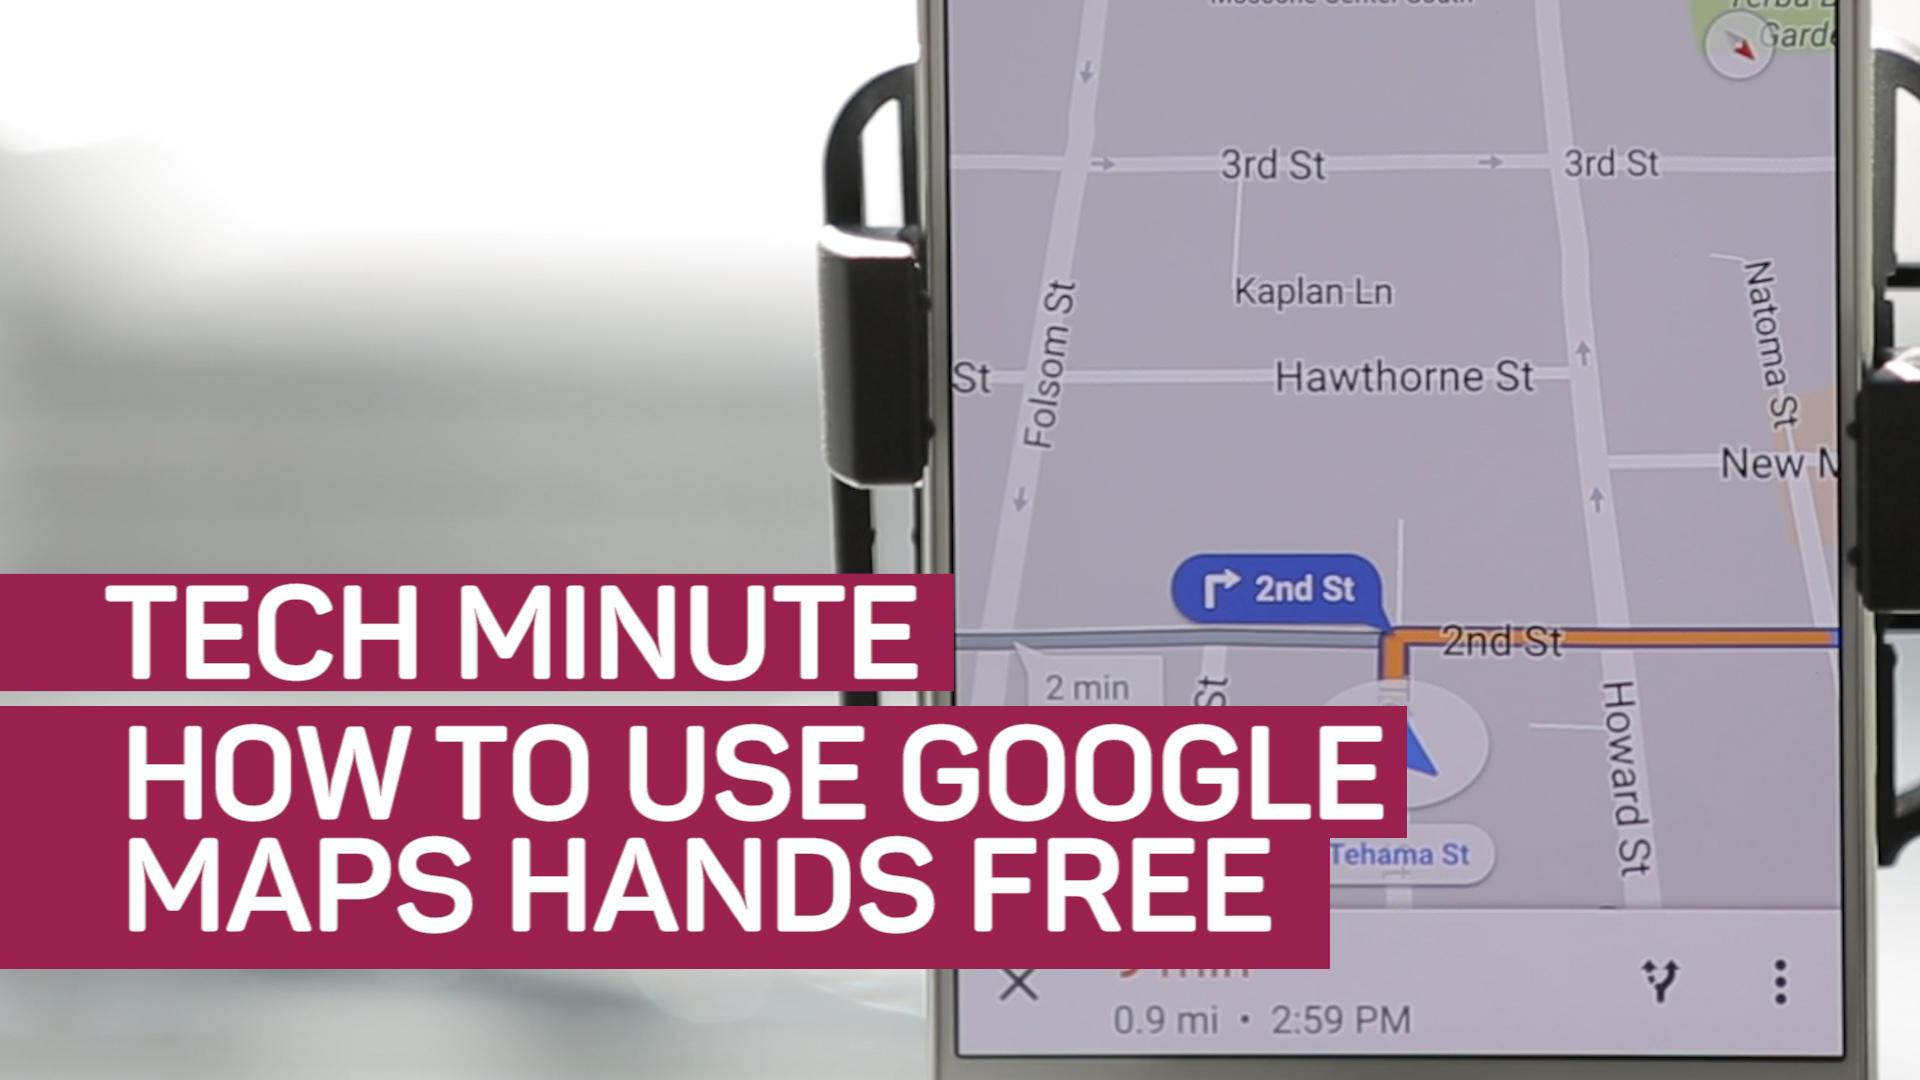 How to use Google Maps hands-free